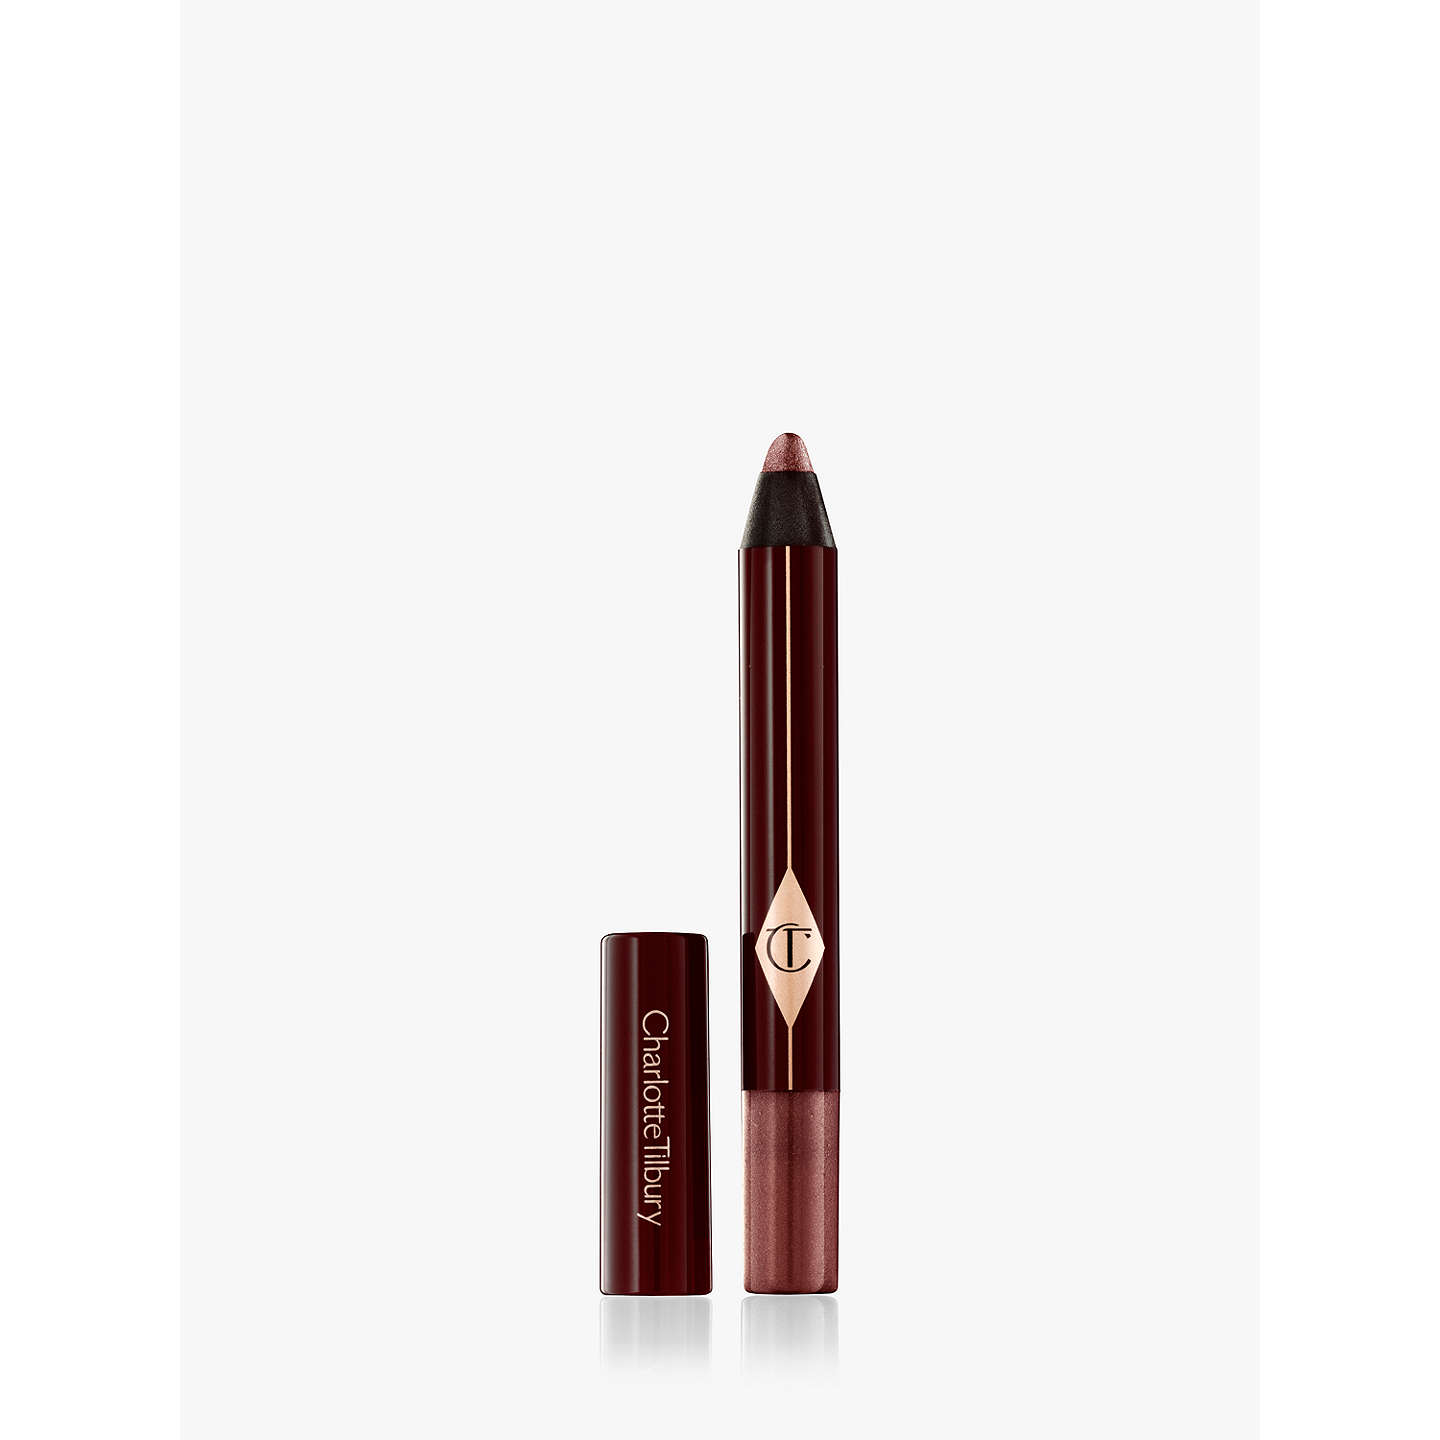 BuyCharlotte Tilbury Colour Chameleon Eyeshadow Pencil, Bronzed Garnet Online at johnlewis.com